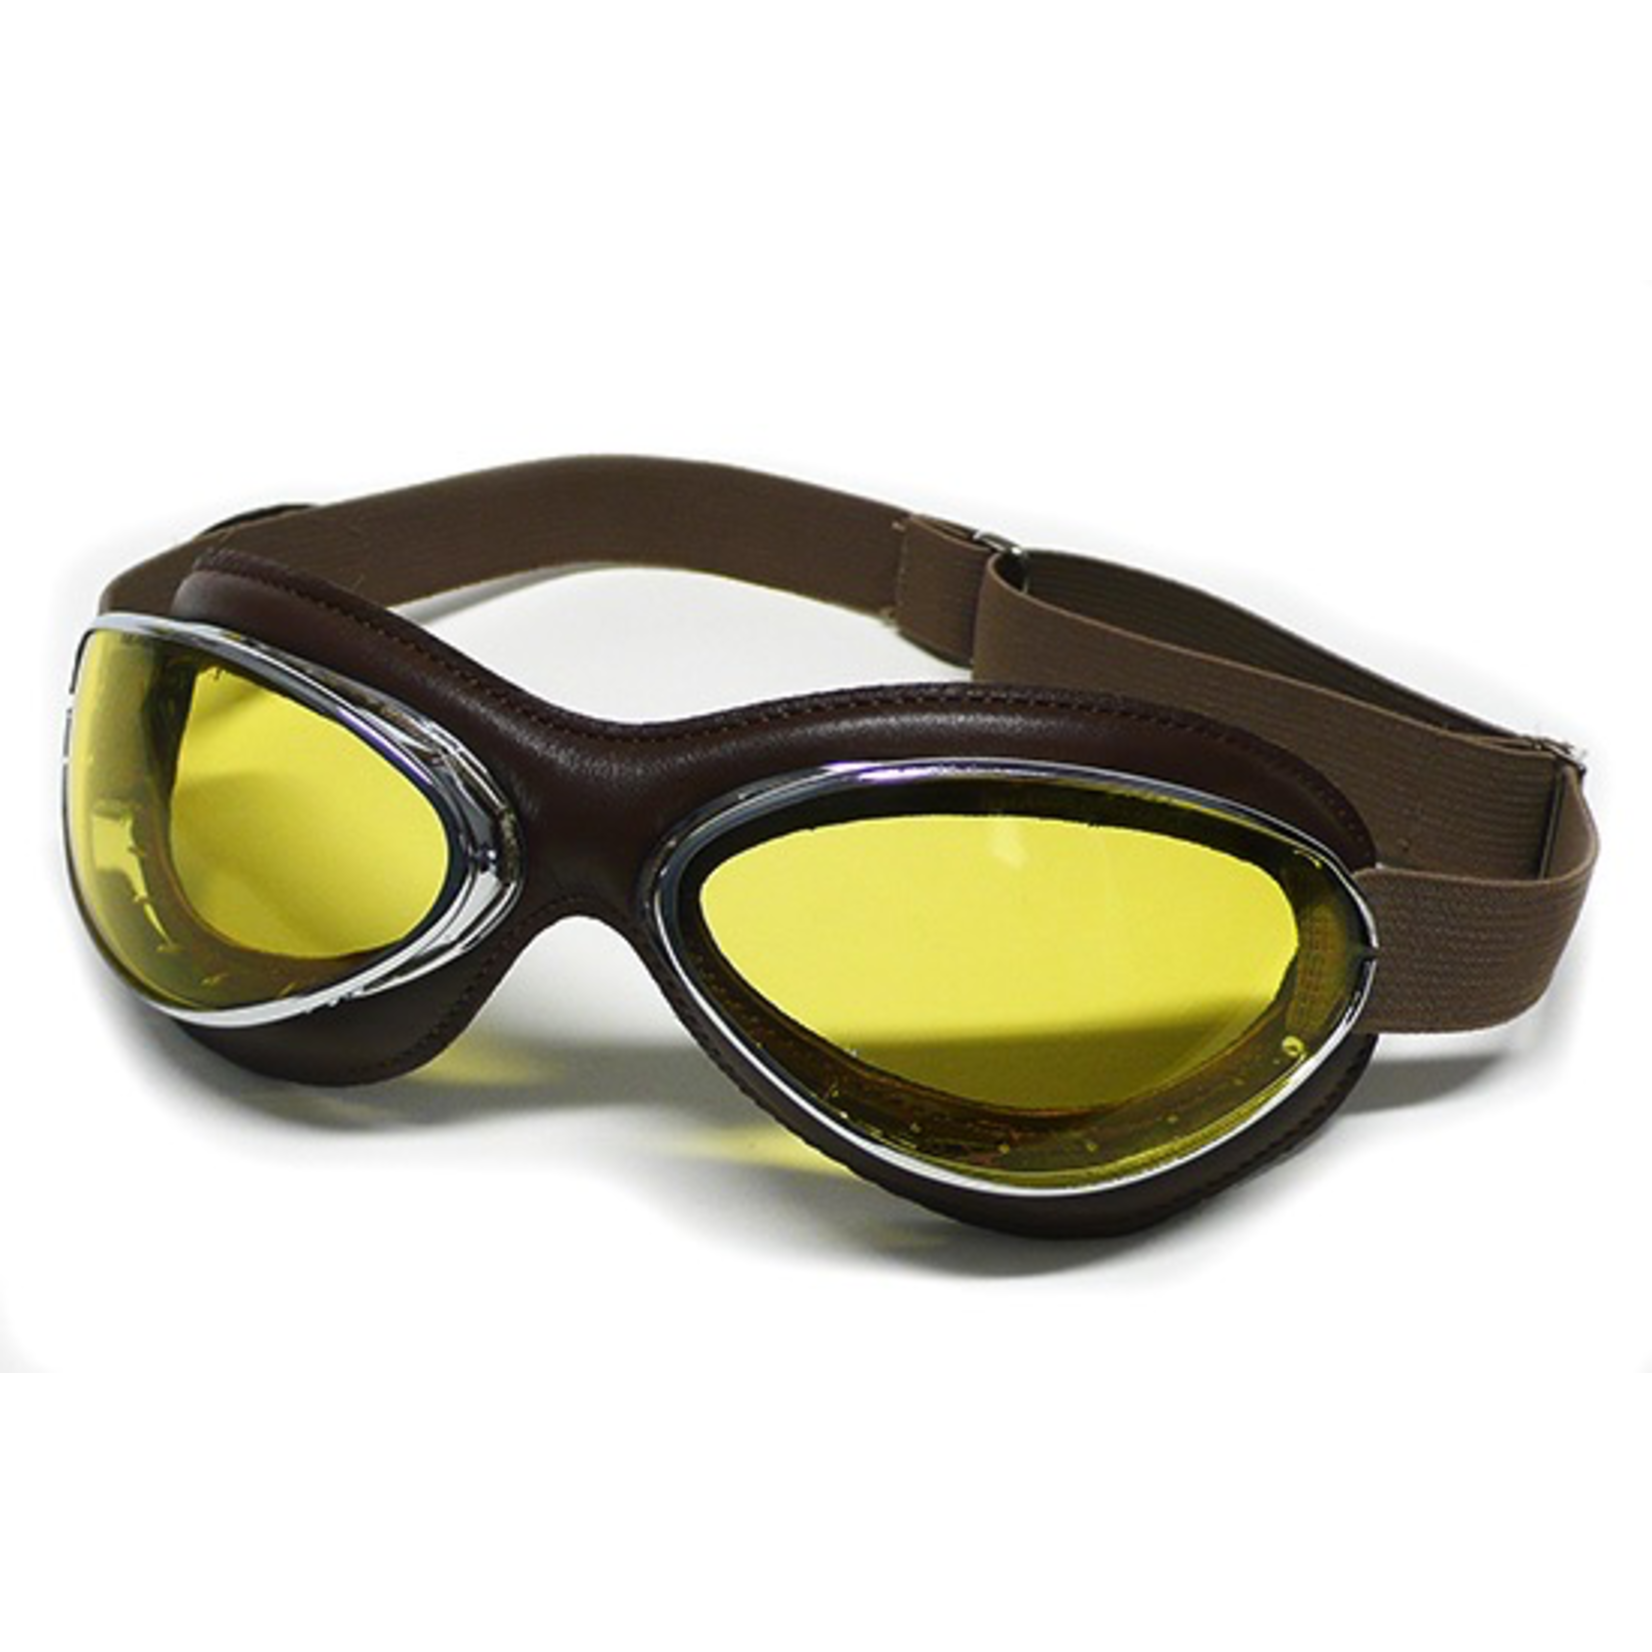 Apparel Goggles, Aviator Chrome Brown Leather (France)